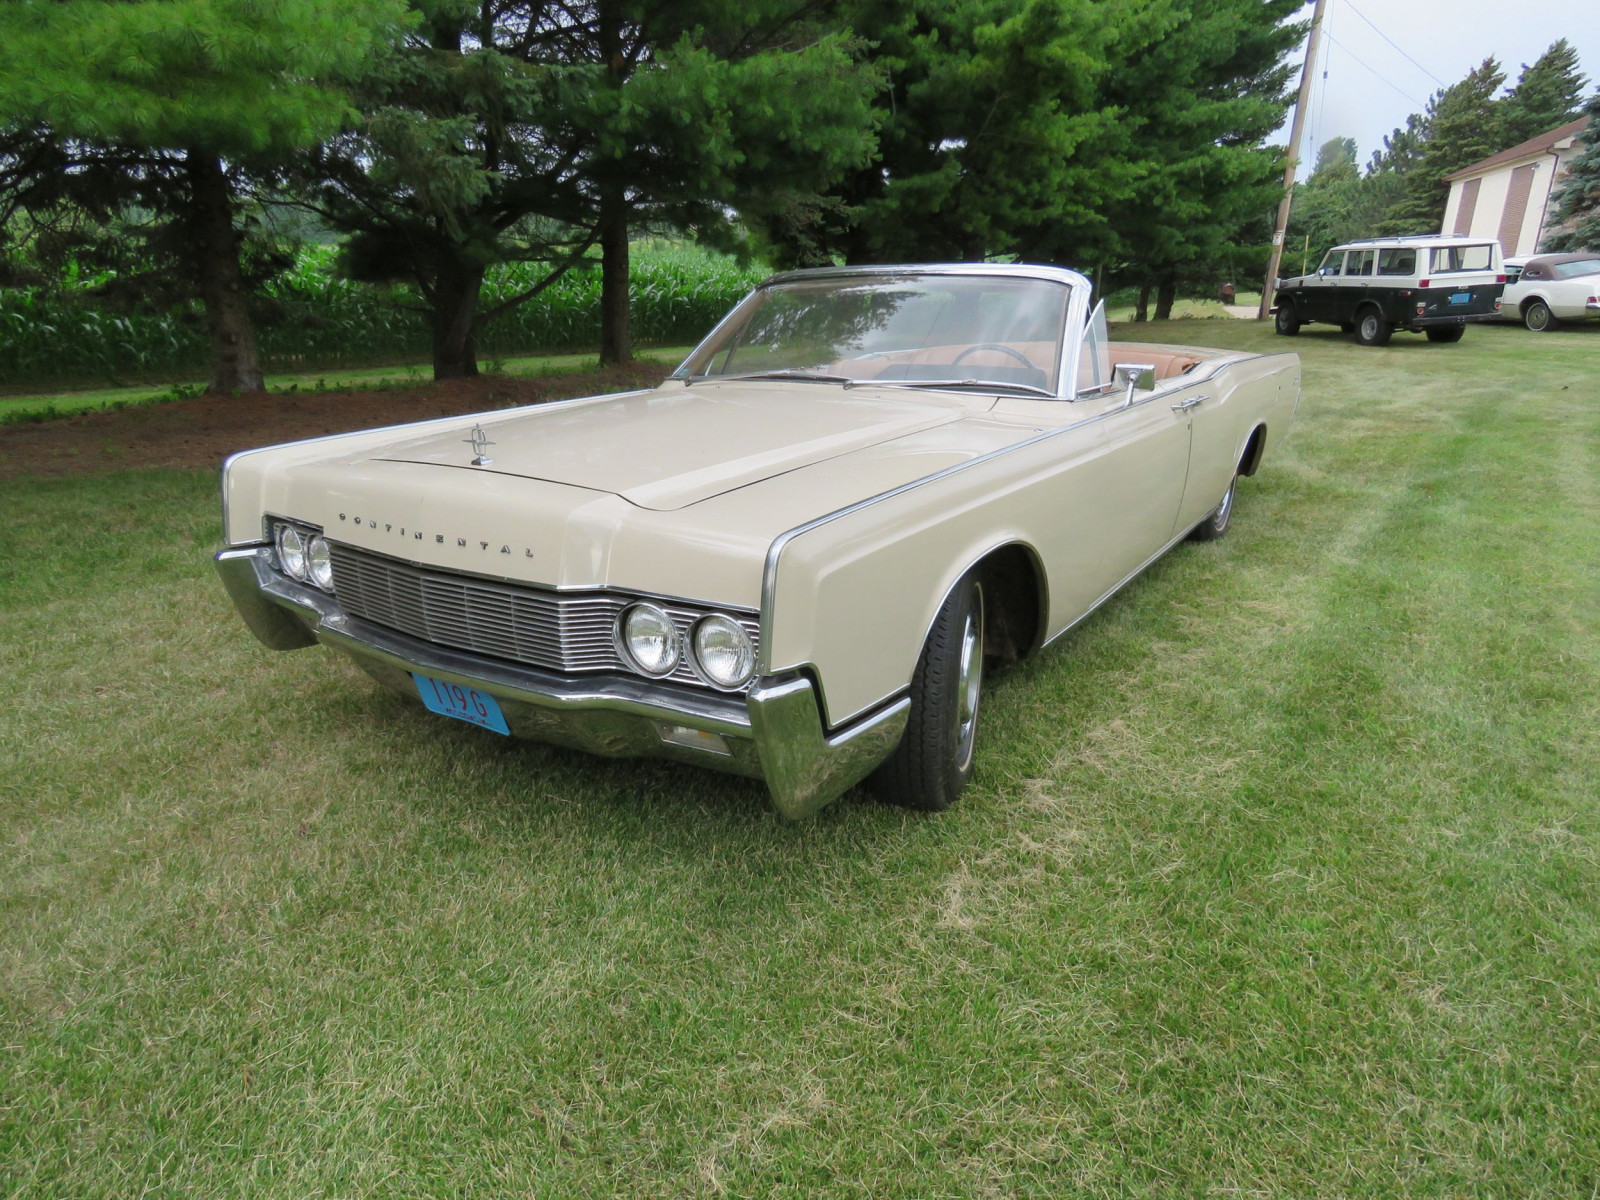 1967 Lincoln Continental 4dr Suicide Convertible - Image 4